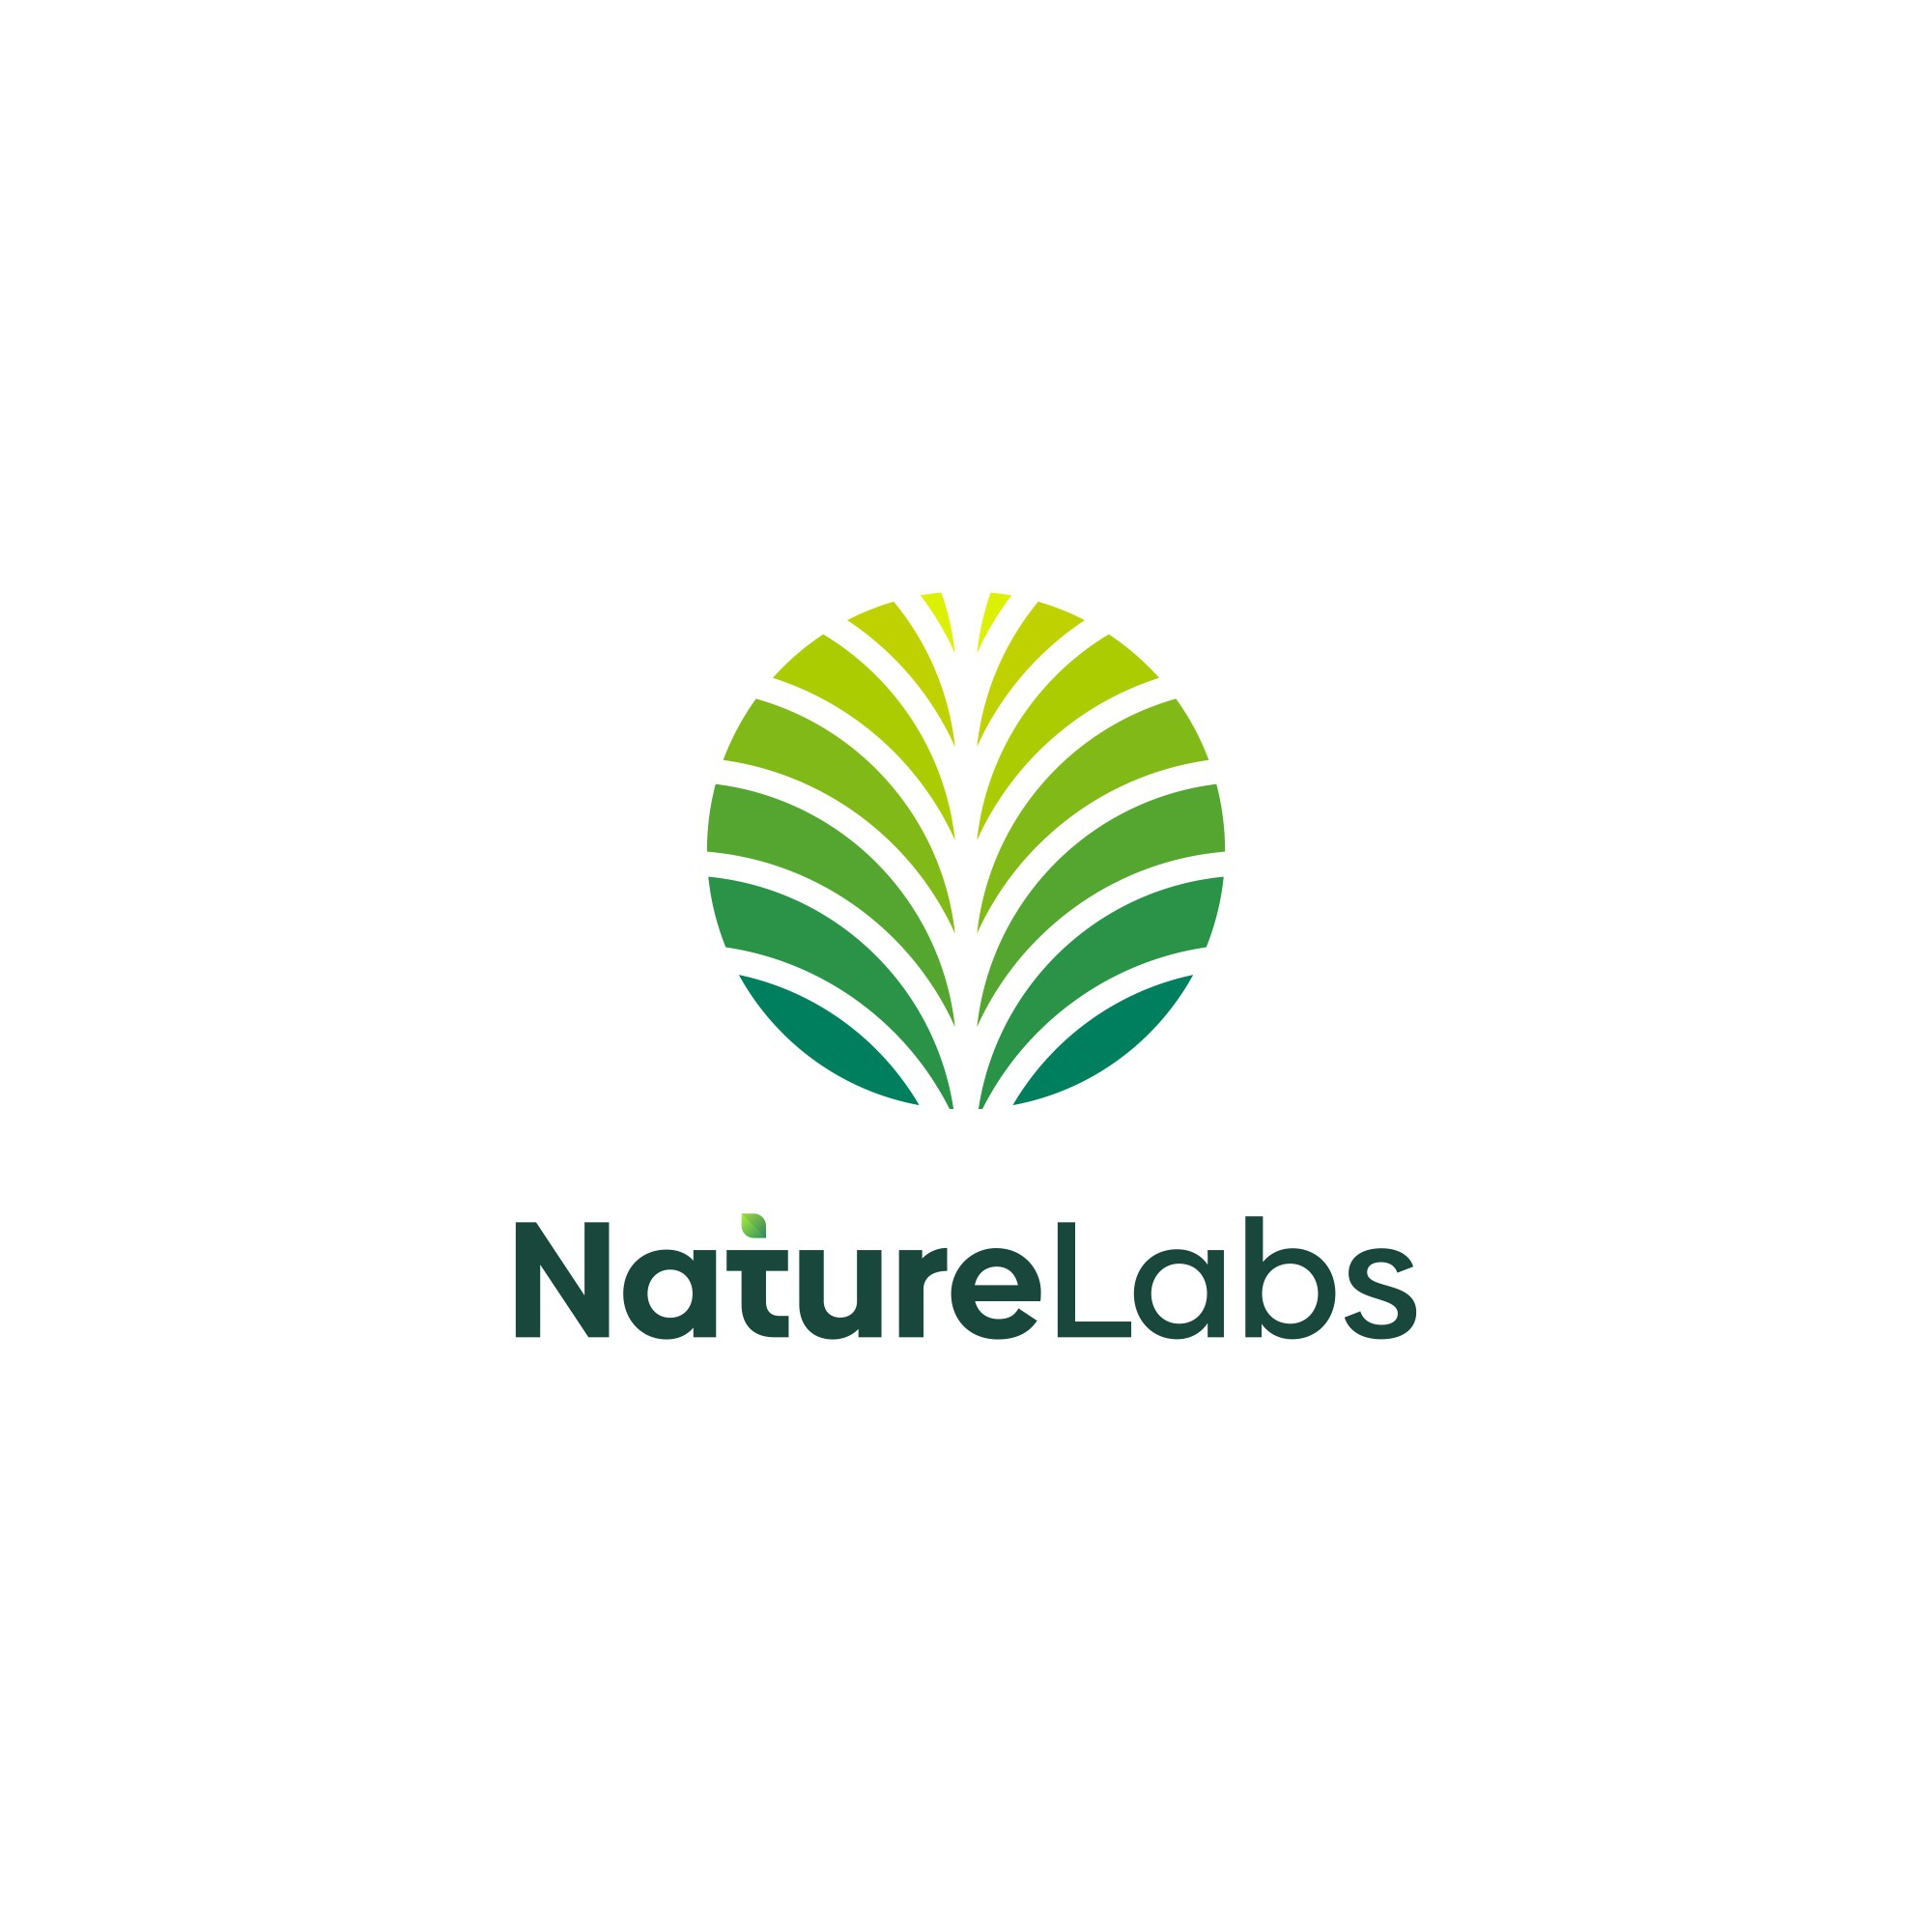 Professional-looking logo for Australian hemp-related business